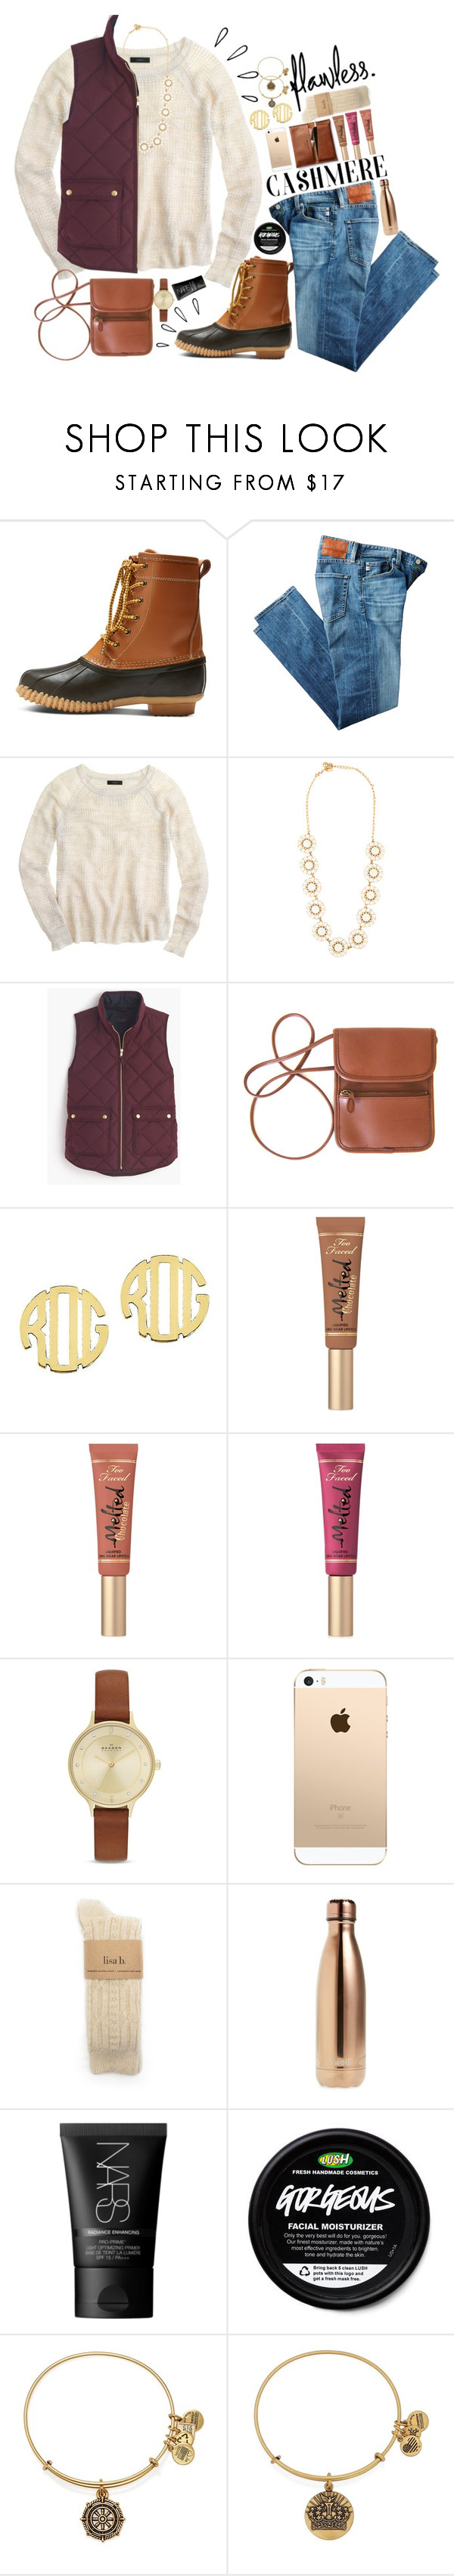 """""""sweater weather"""" by bcsipp ❤ liked on Polyvore featuring Merona, AG Adriano Goldschmied, Old Navy, J.Crew, Kate Spade, QVC, Too Faced Cosmetics, Skagen, S'well and NARS Cosmetics"""